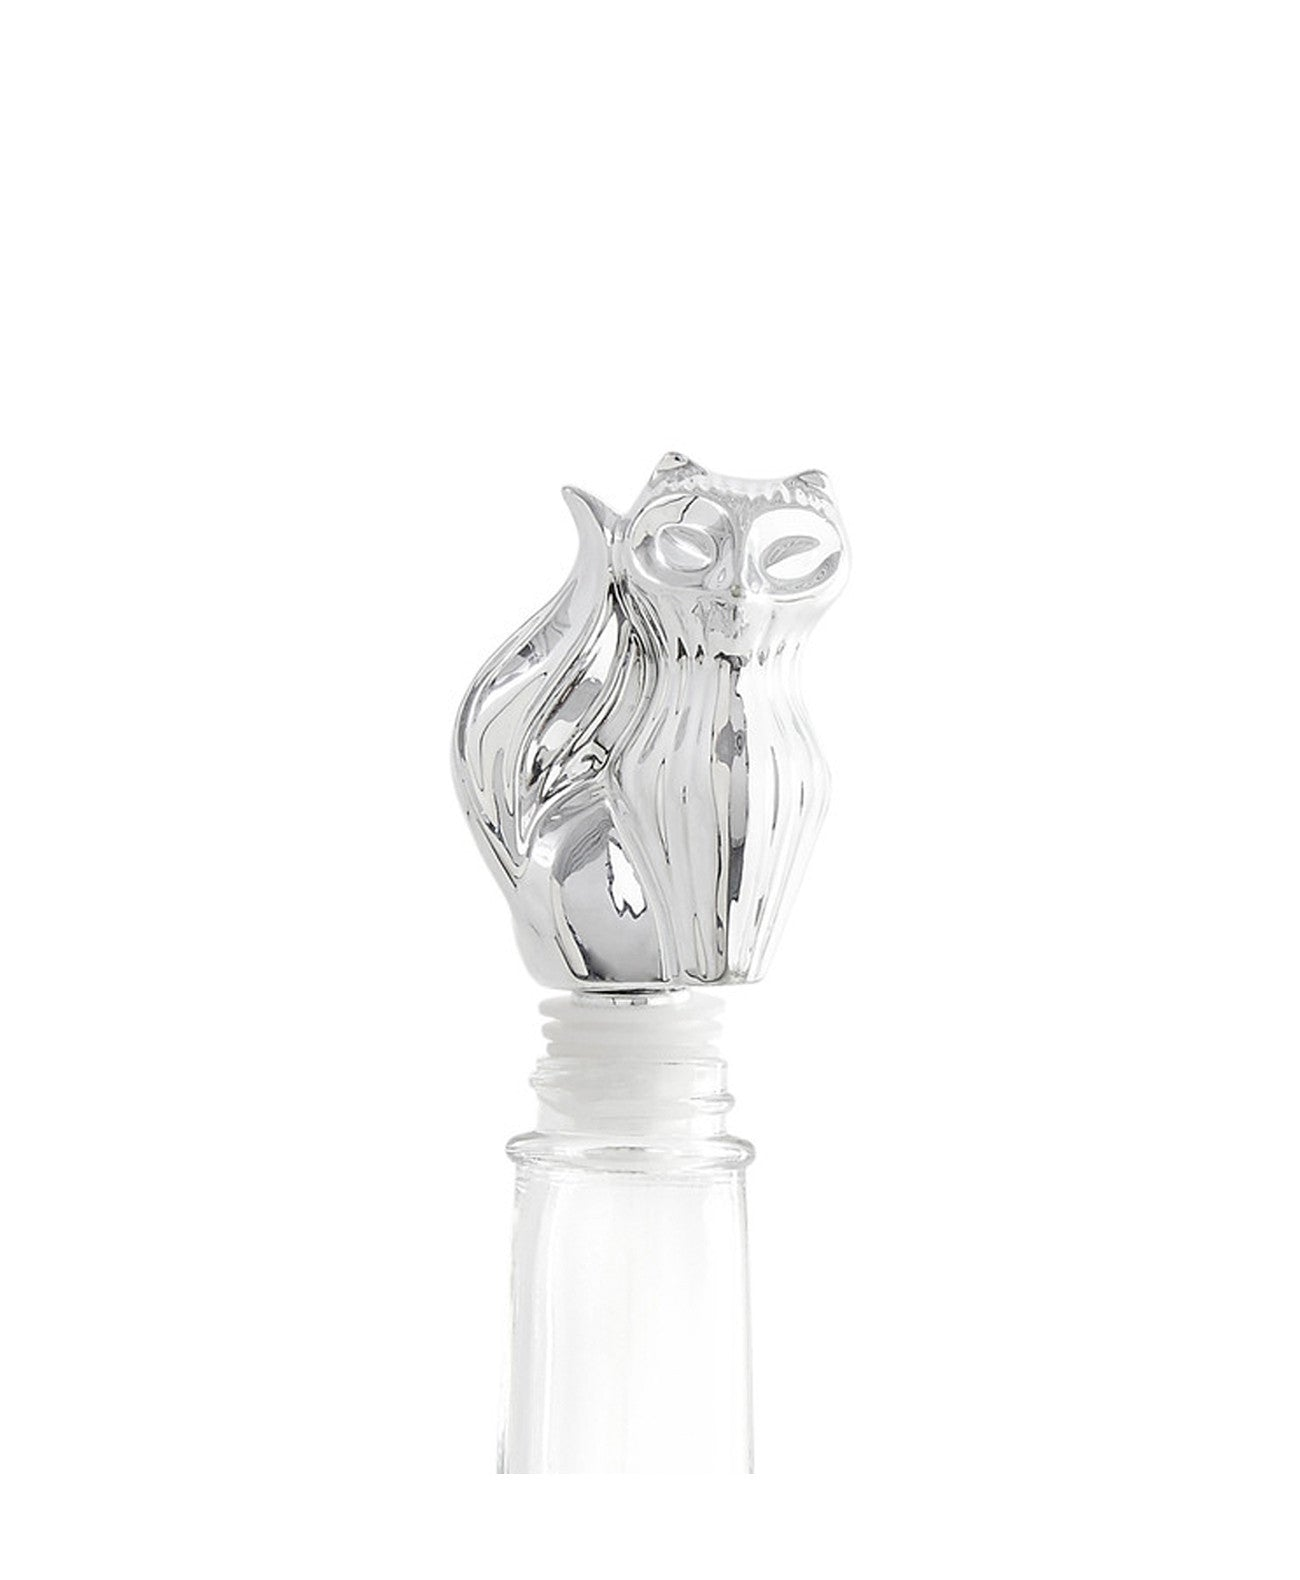 Silver Fox Bottle Stopper - Koko & Palenki